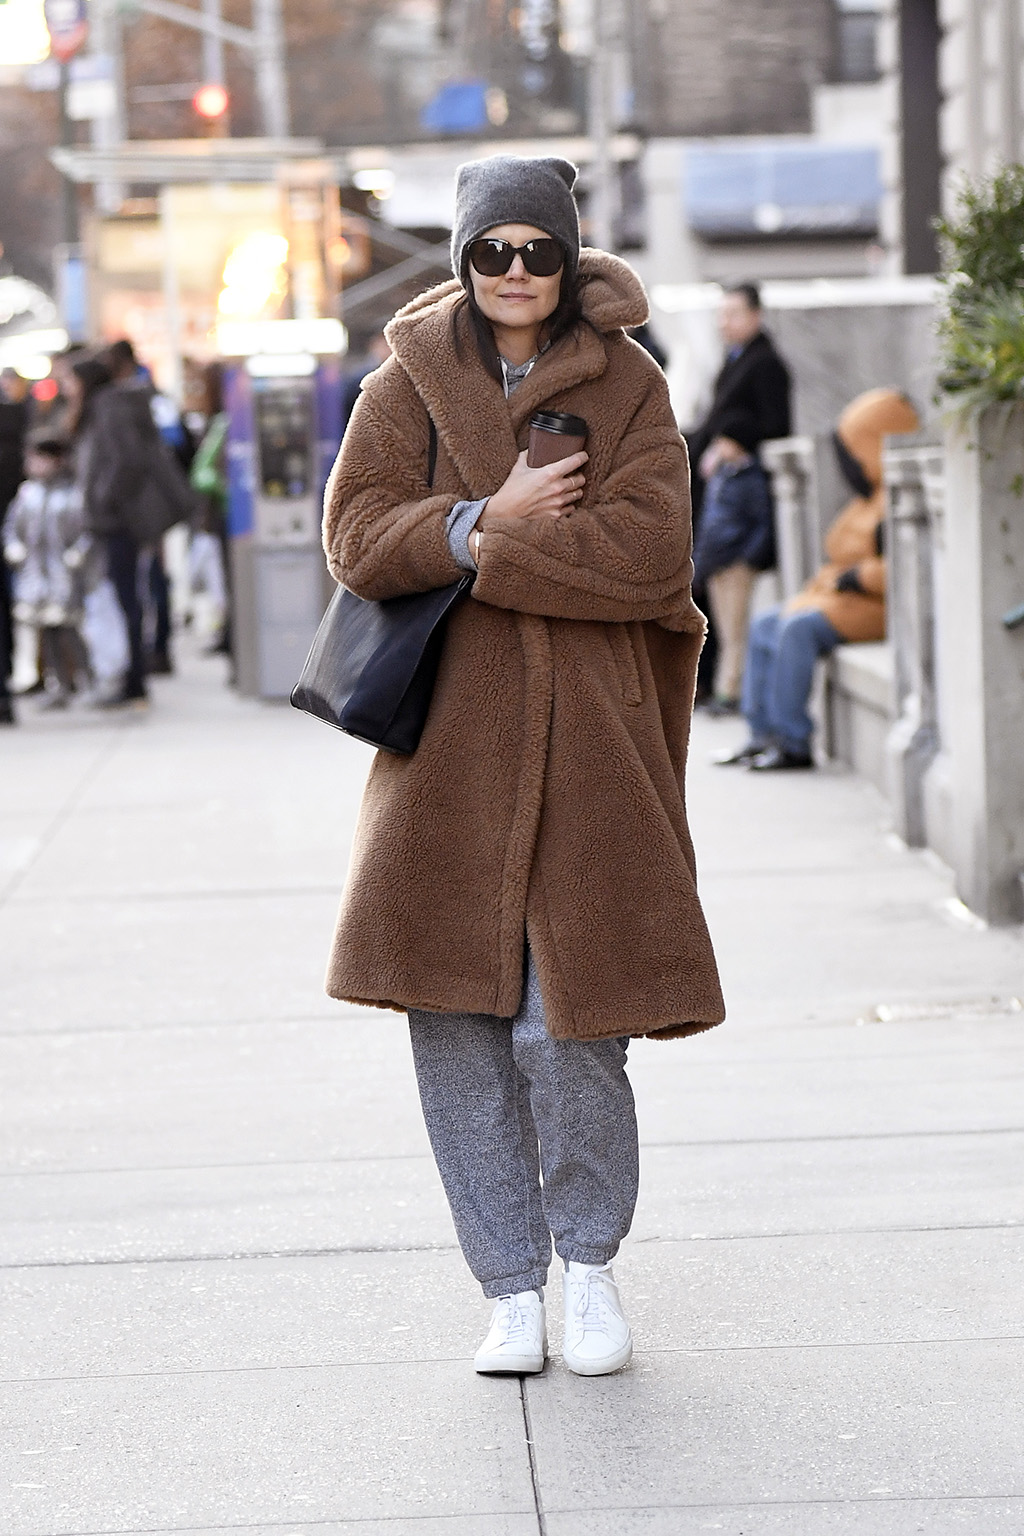 katie holmes, gray sweatsuit, hoodie, sweatpants, max mara coat, teddy coat, tote bag, sunglasses, beanie, Actress Katie Holmes steps out for coffee all bundled up on her Birthday, turning 41 today in a cold day New York City, NY, USA.Pictured: Katie HolmesRef: SPL5136499 181219 NON-EXCLUSIVEPicture by: Elder Ordonez / SplashNews.comSplash News and PicturesLos Angeles: 310-821-2666New York: 212-619-2666London: +44 (0)20 7644 7656Berlin: +49 175 3764 166photodesk@splashnews.comWorld Rights, No Portugal Rights